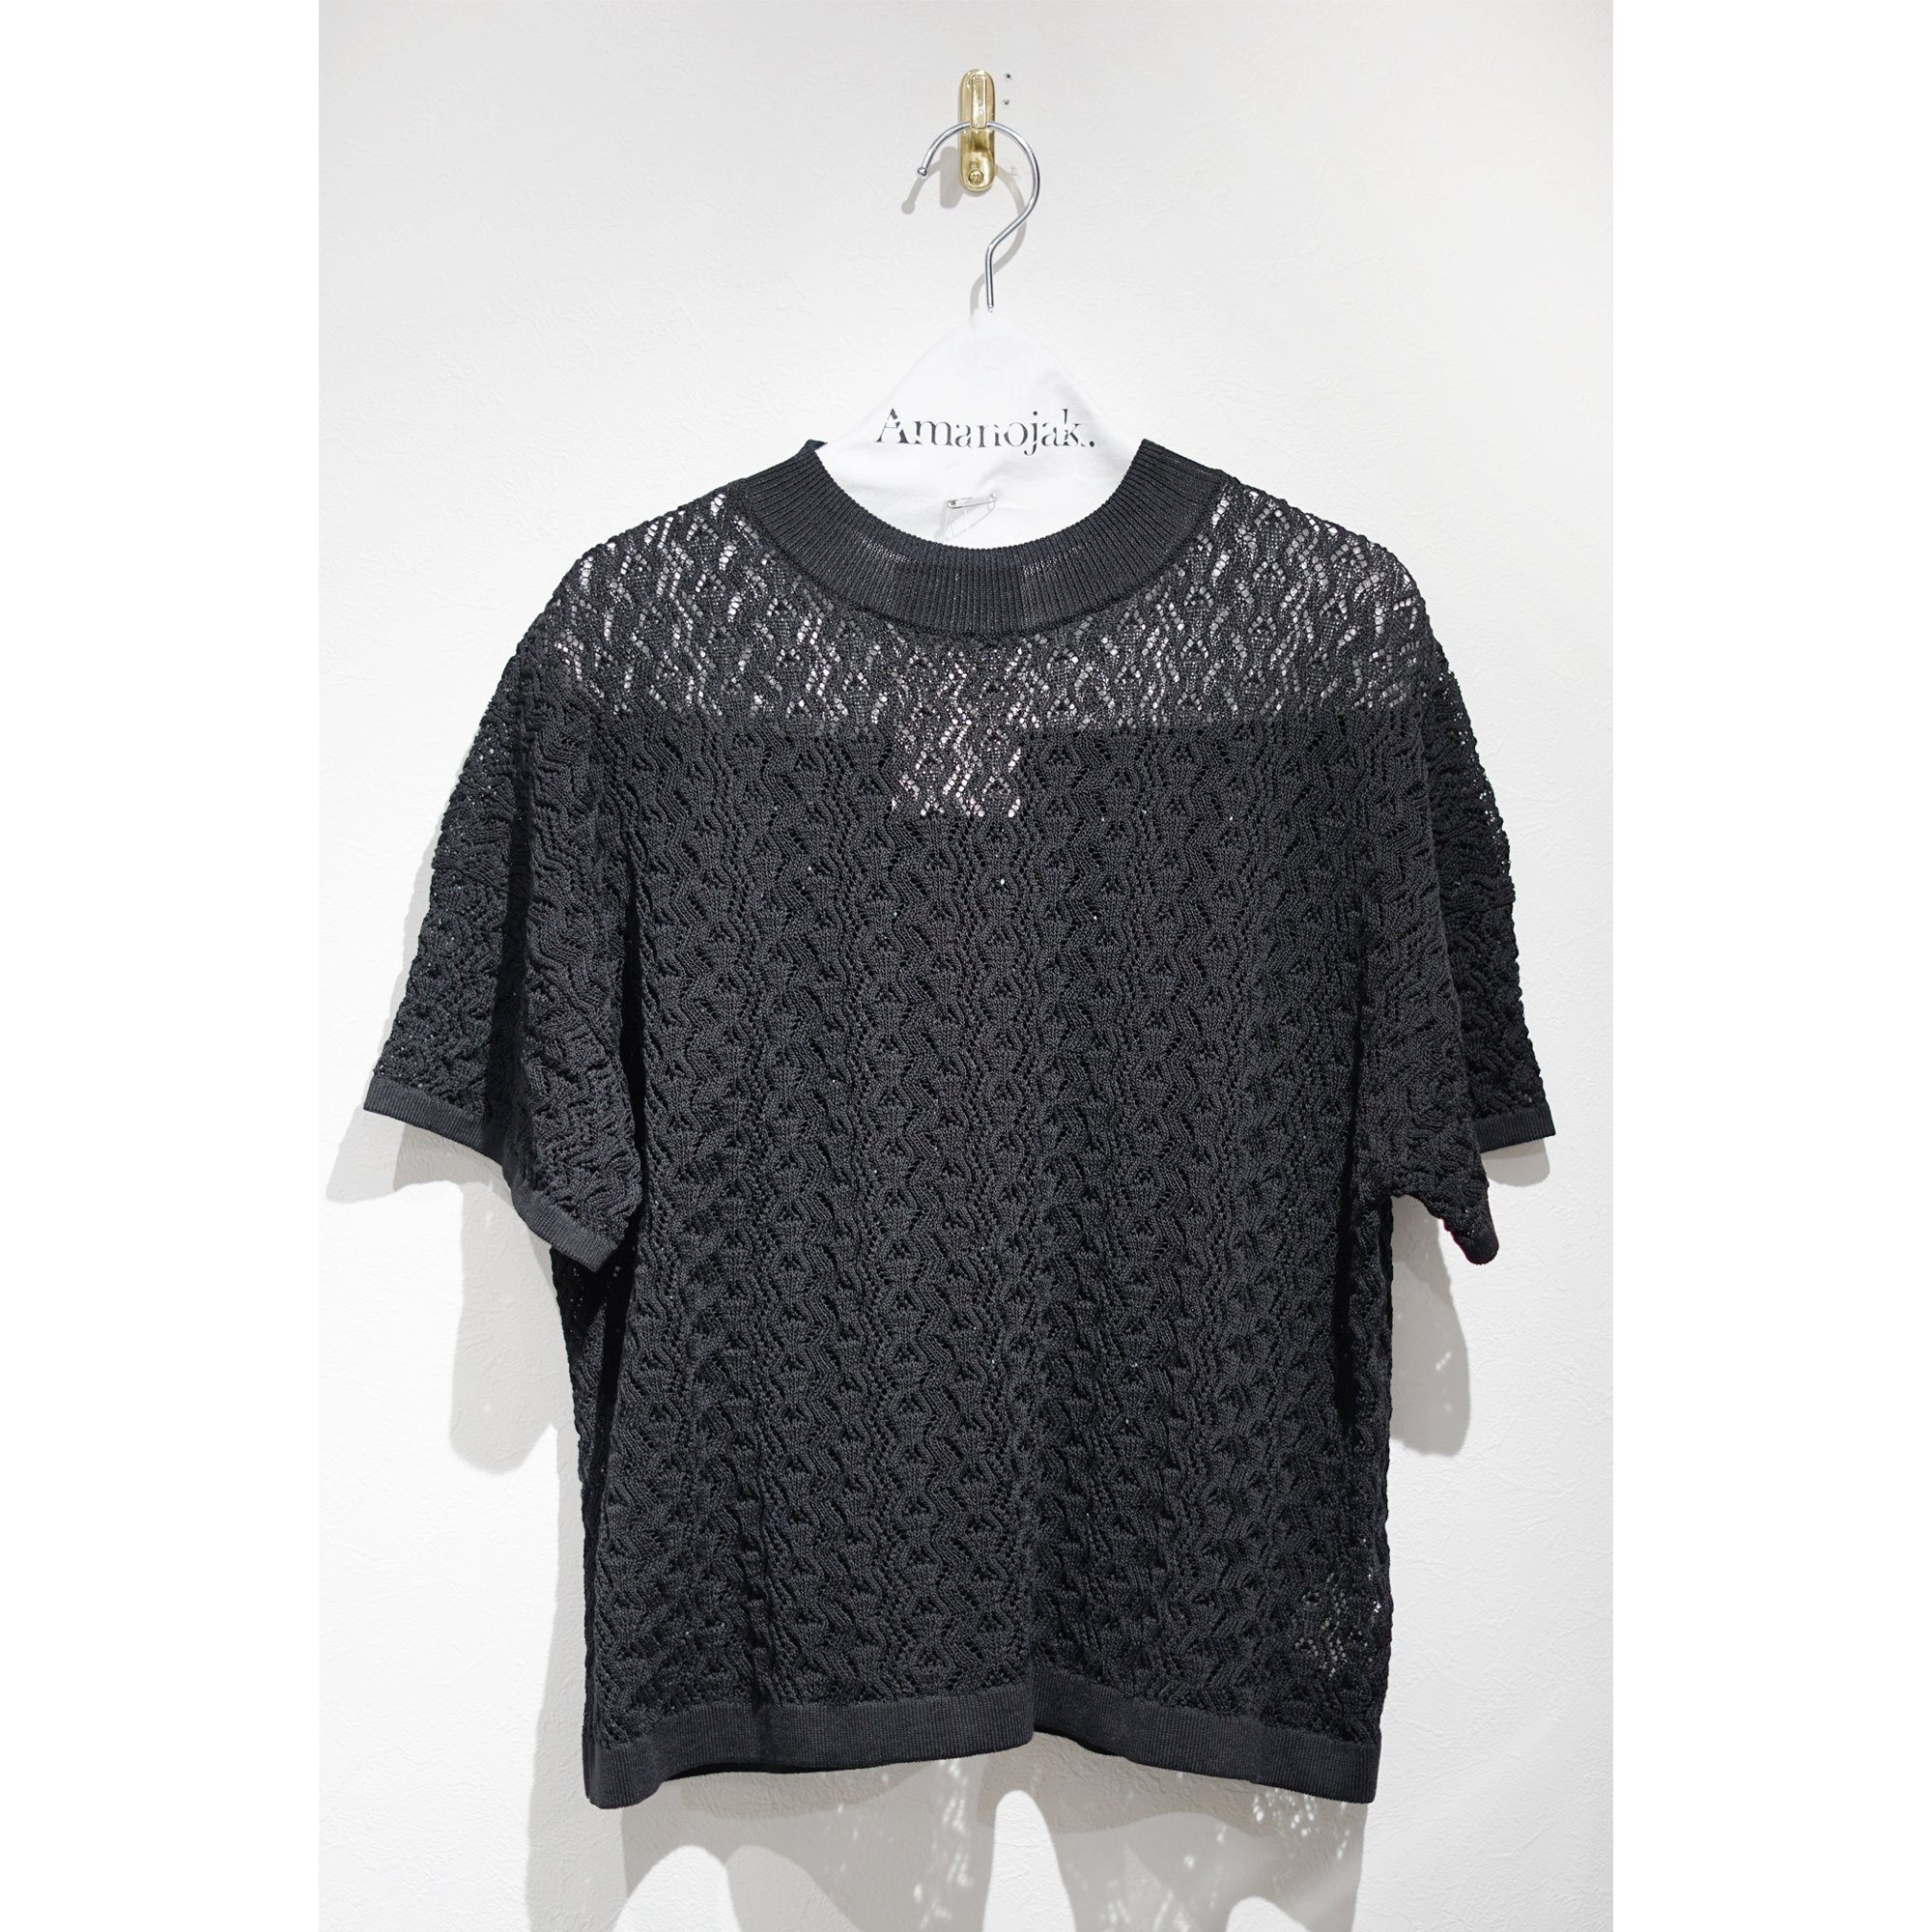 BATONER-SIRKET CORD透かし柄SHORT SLEEVE HI NECK BLACK